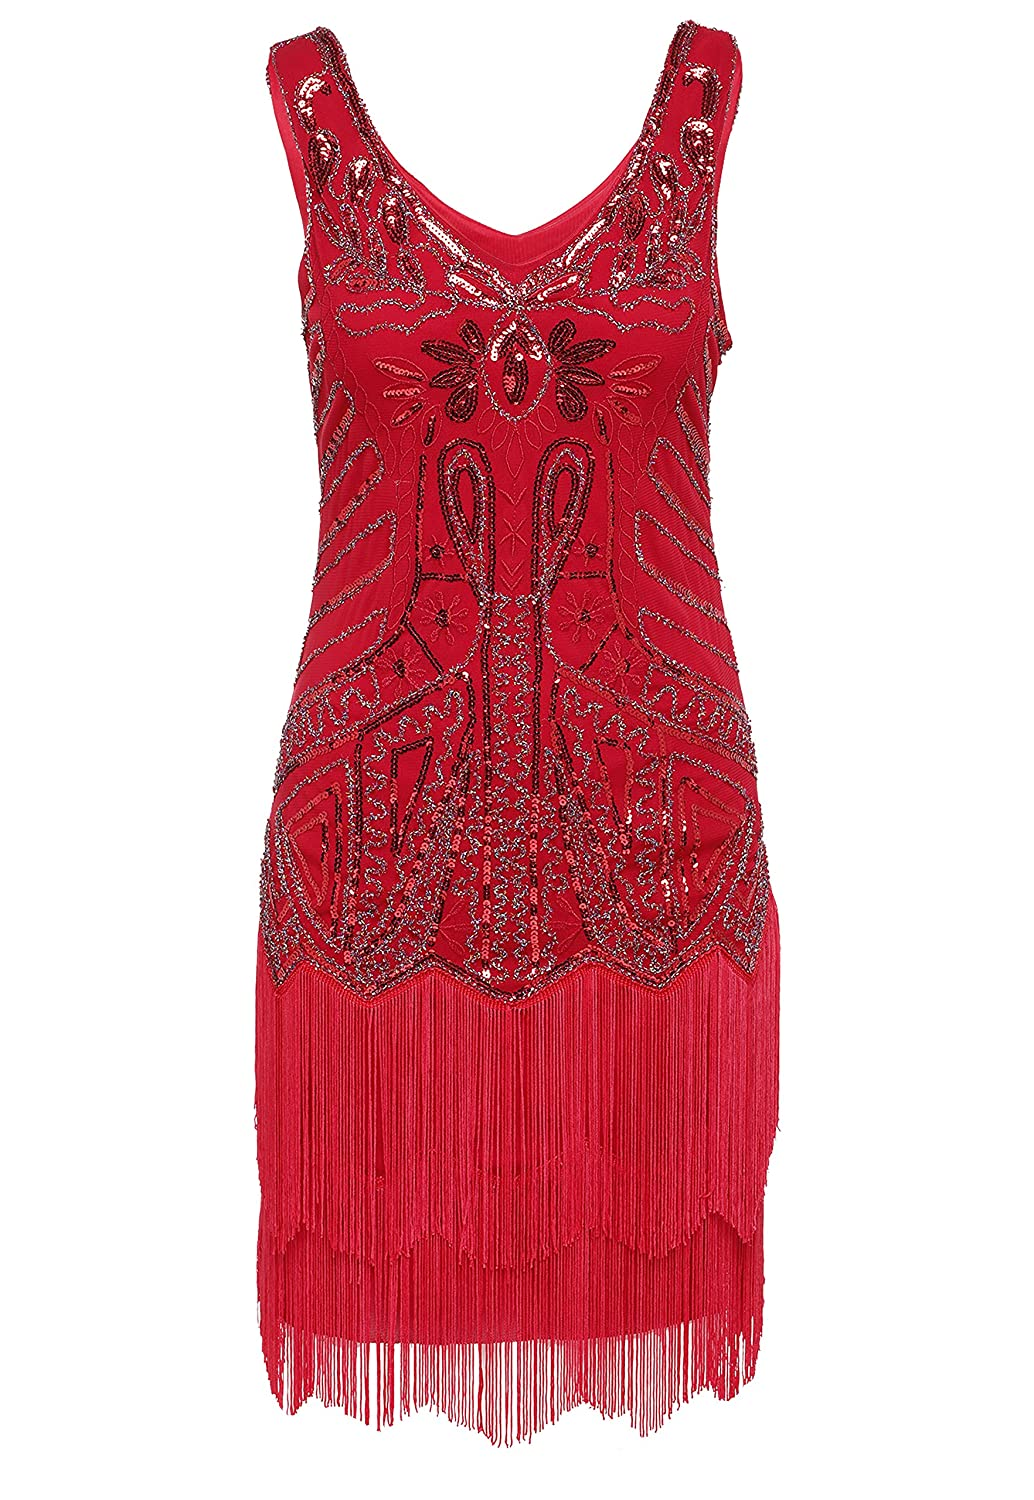 1920s Clothing BABEYOND Womens Flapper Dresses 1920s V Neck Beaded Fringed Great Gatsby Dress $28.99 AT vintagedancer.com